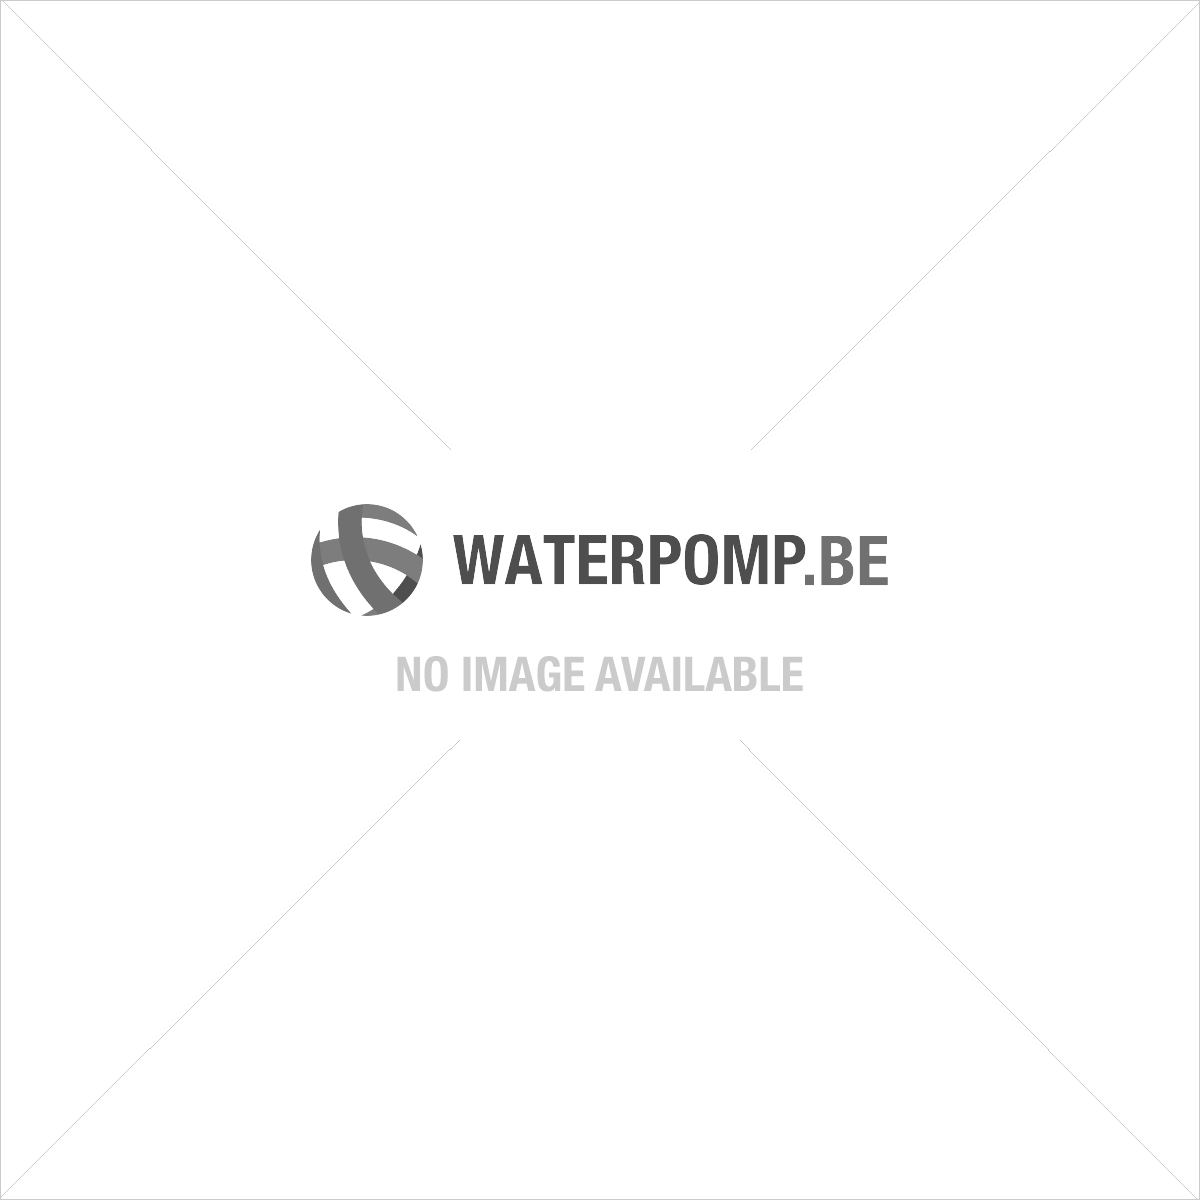 Kraancomputer watertimer